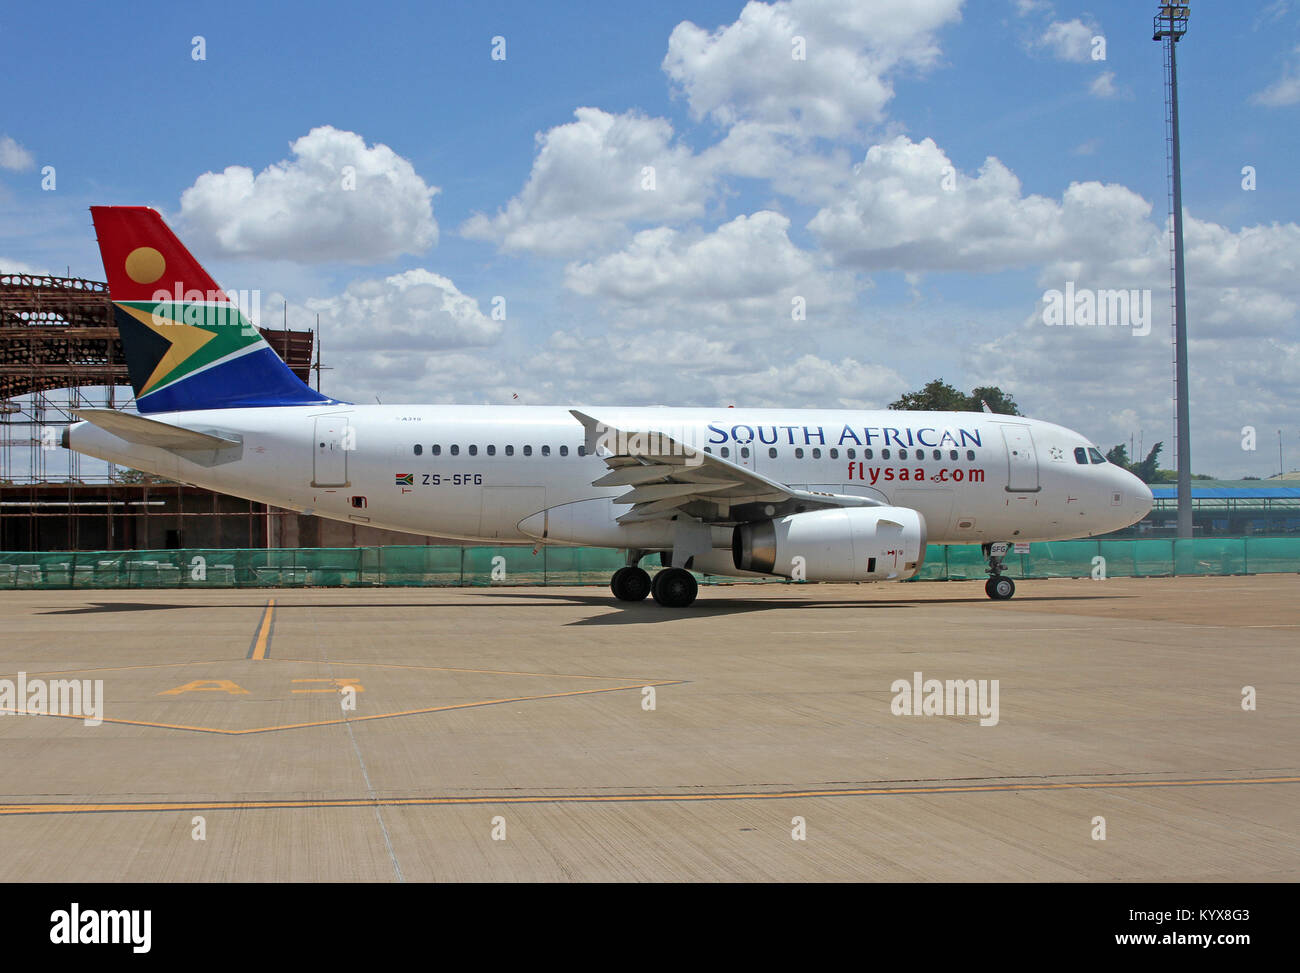 South African Airline Stock Photos Amp South African Airline